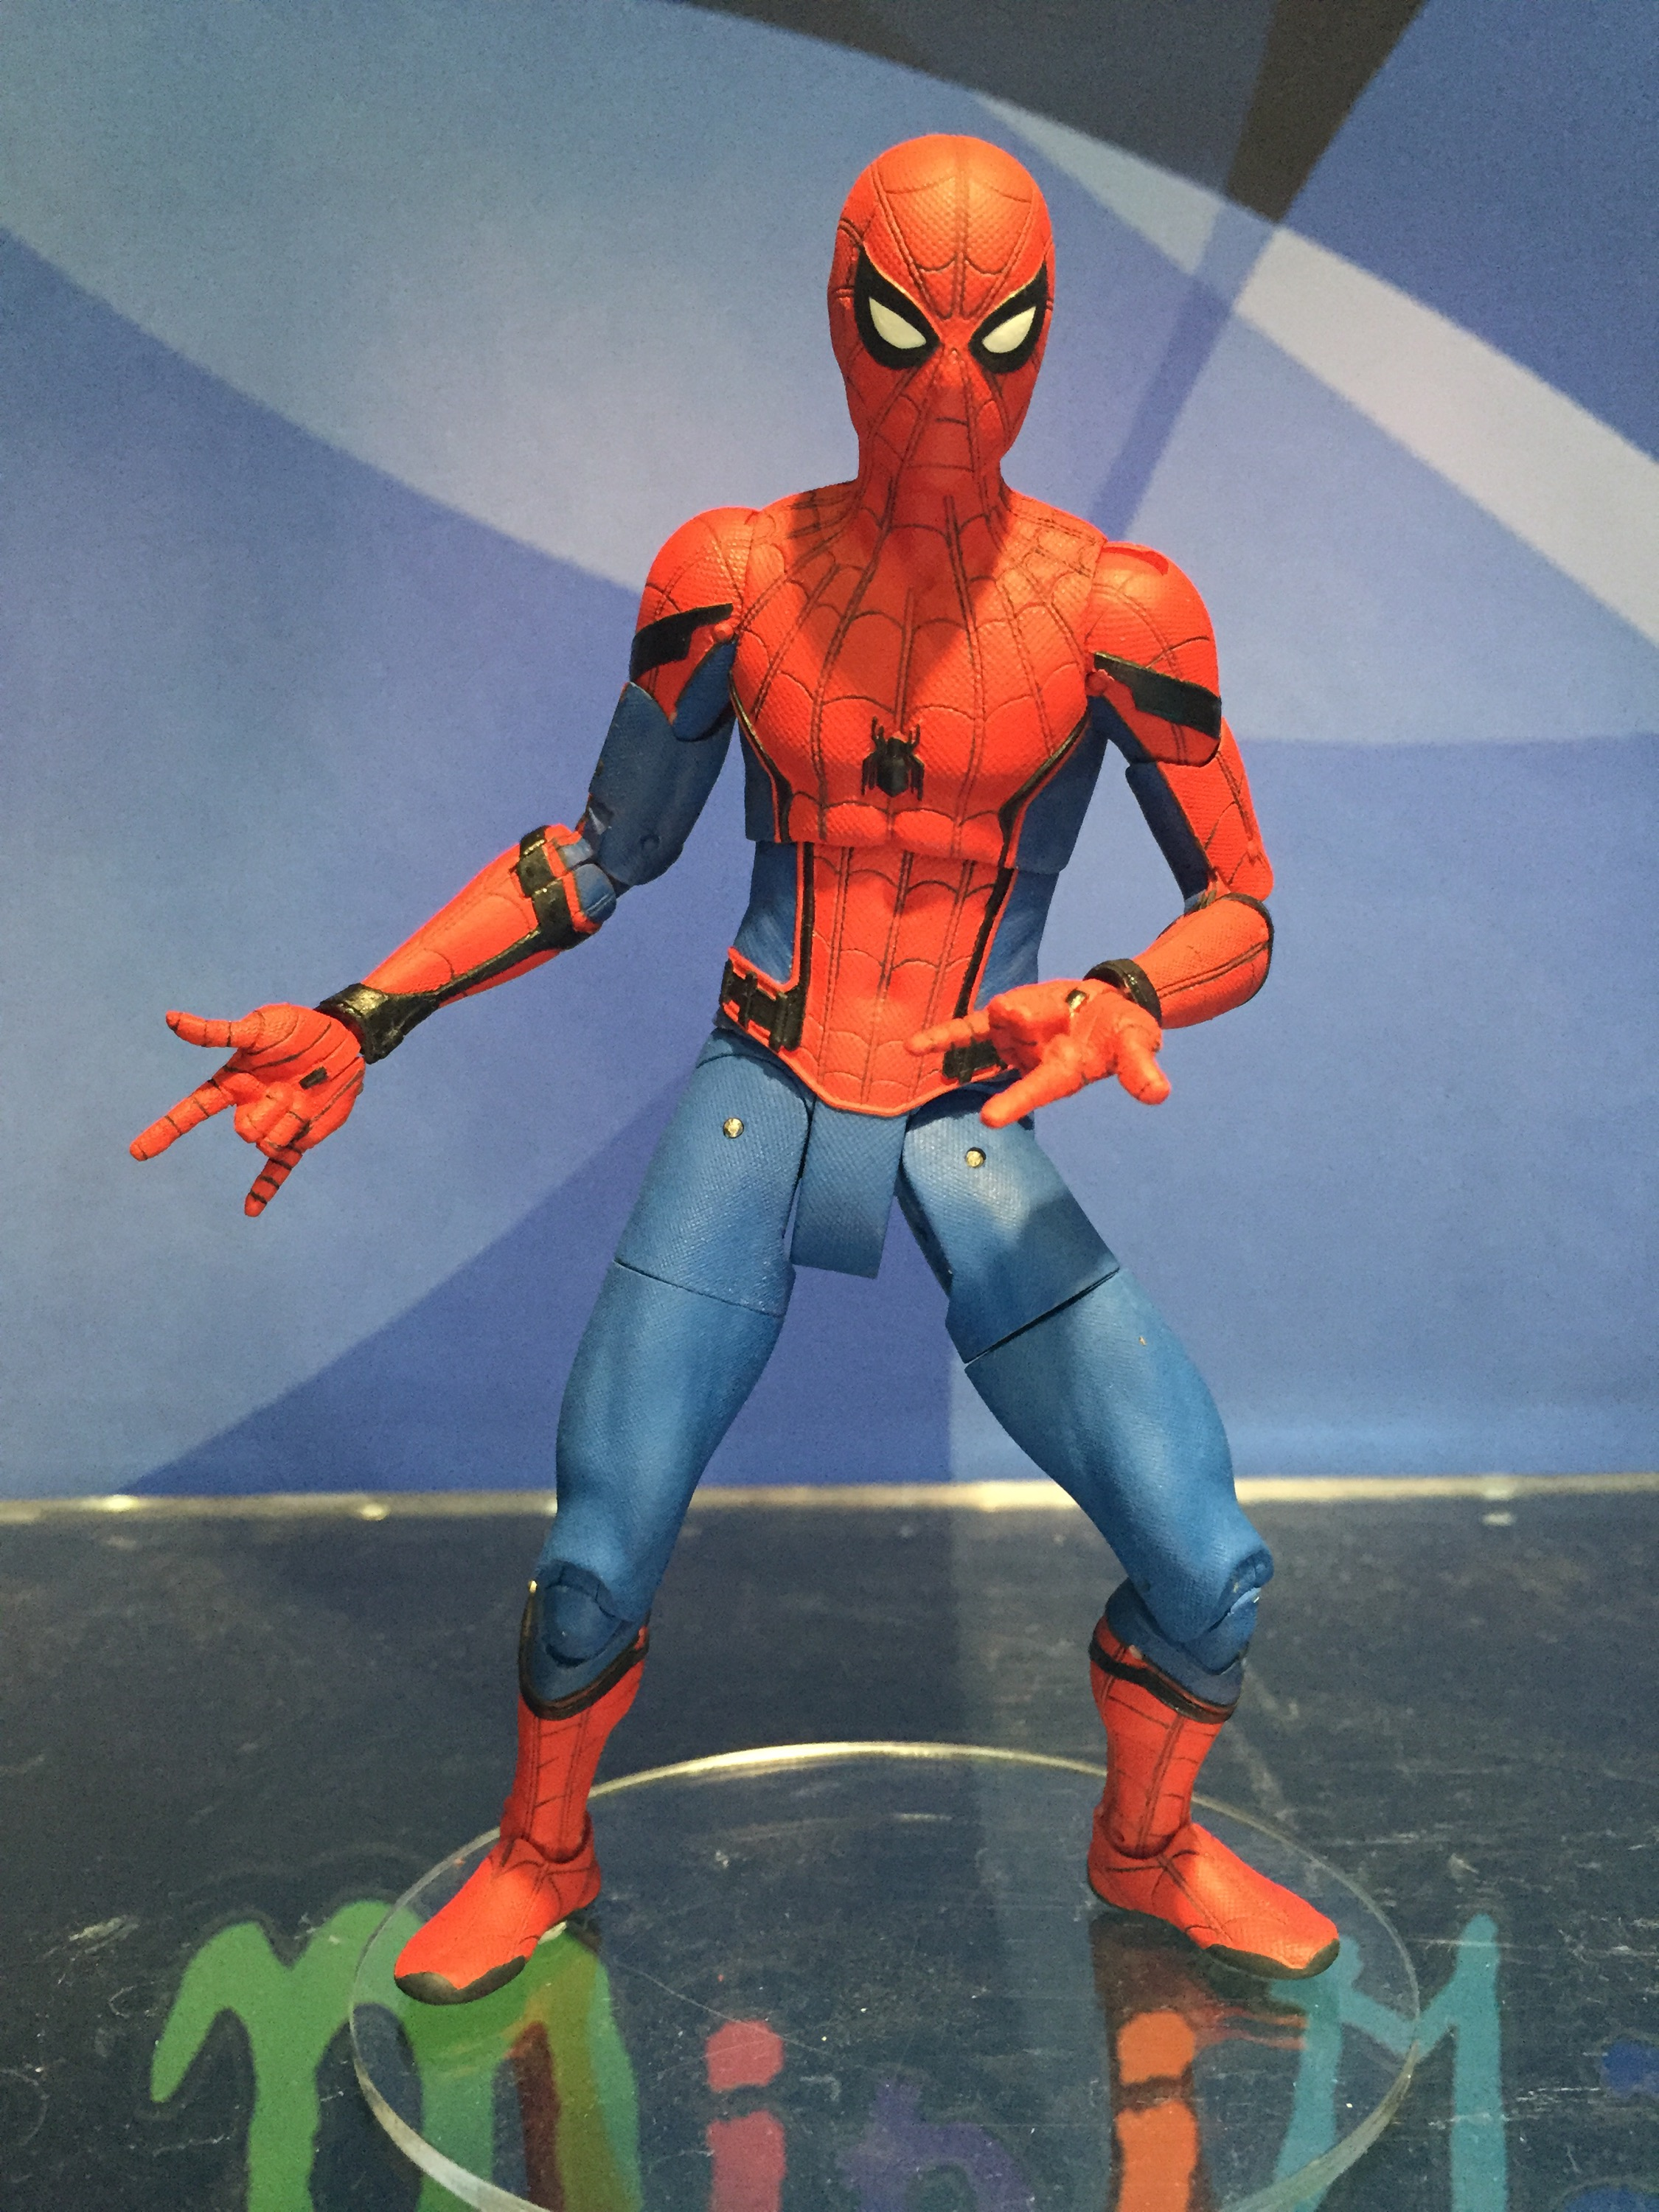 Homecoming Spider Man Toys : Toy fair marvel select spider man homecoming star lord